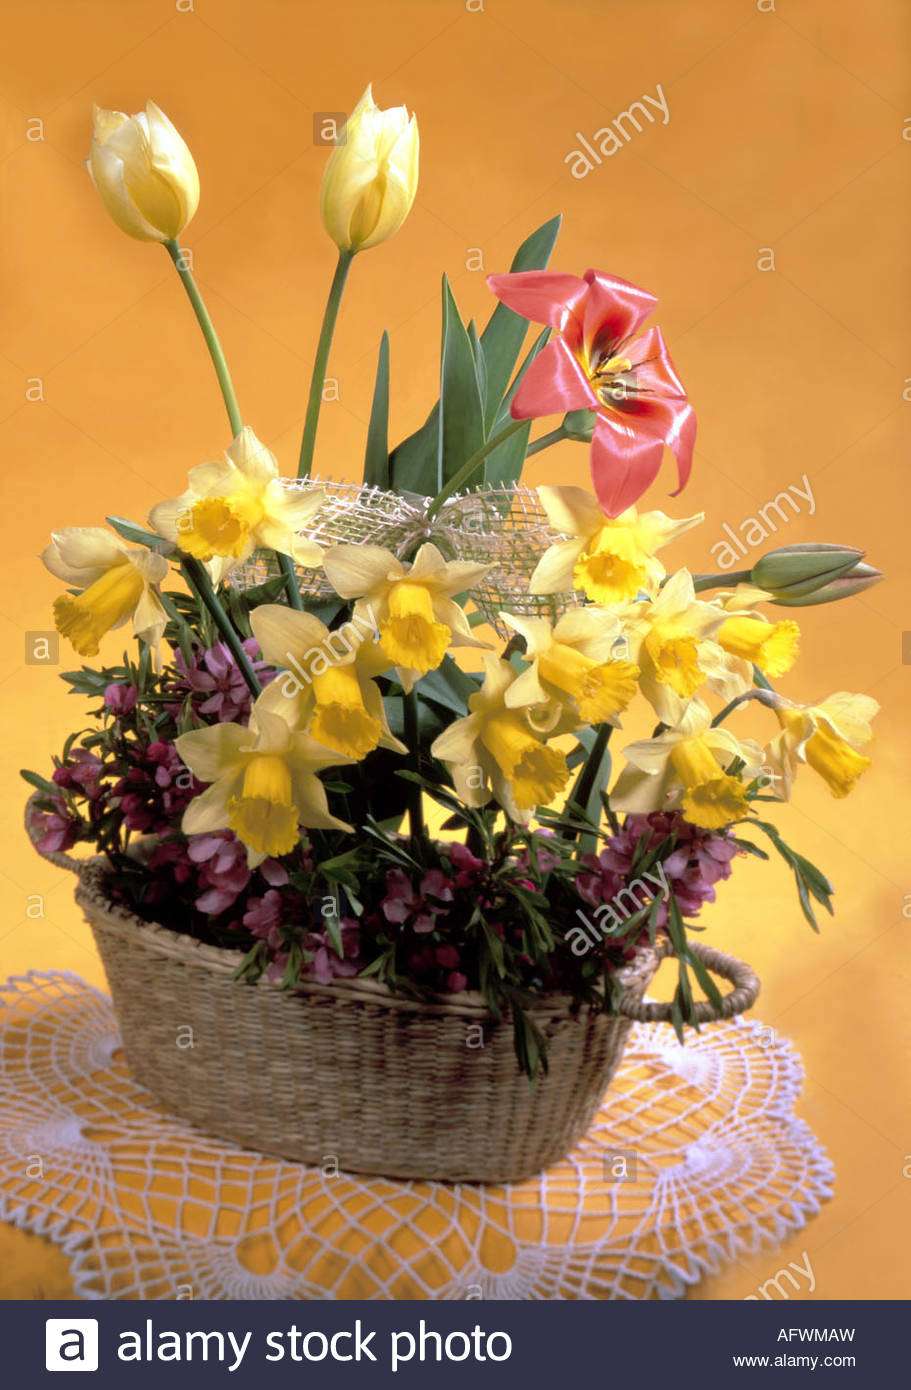 Basket Full Of Spring Flowers Stock Photo 14027904 Alamy